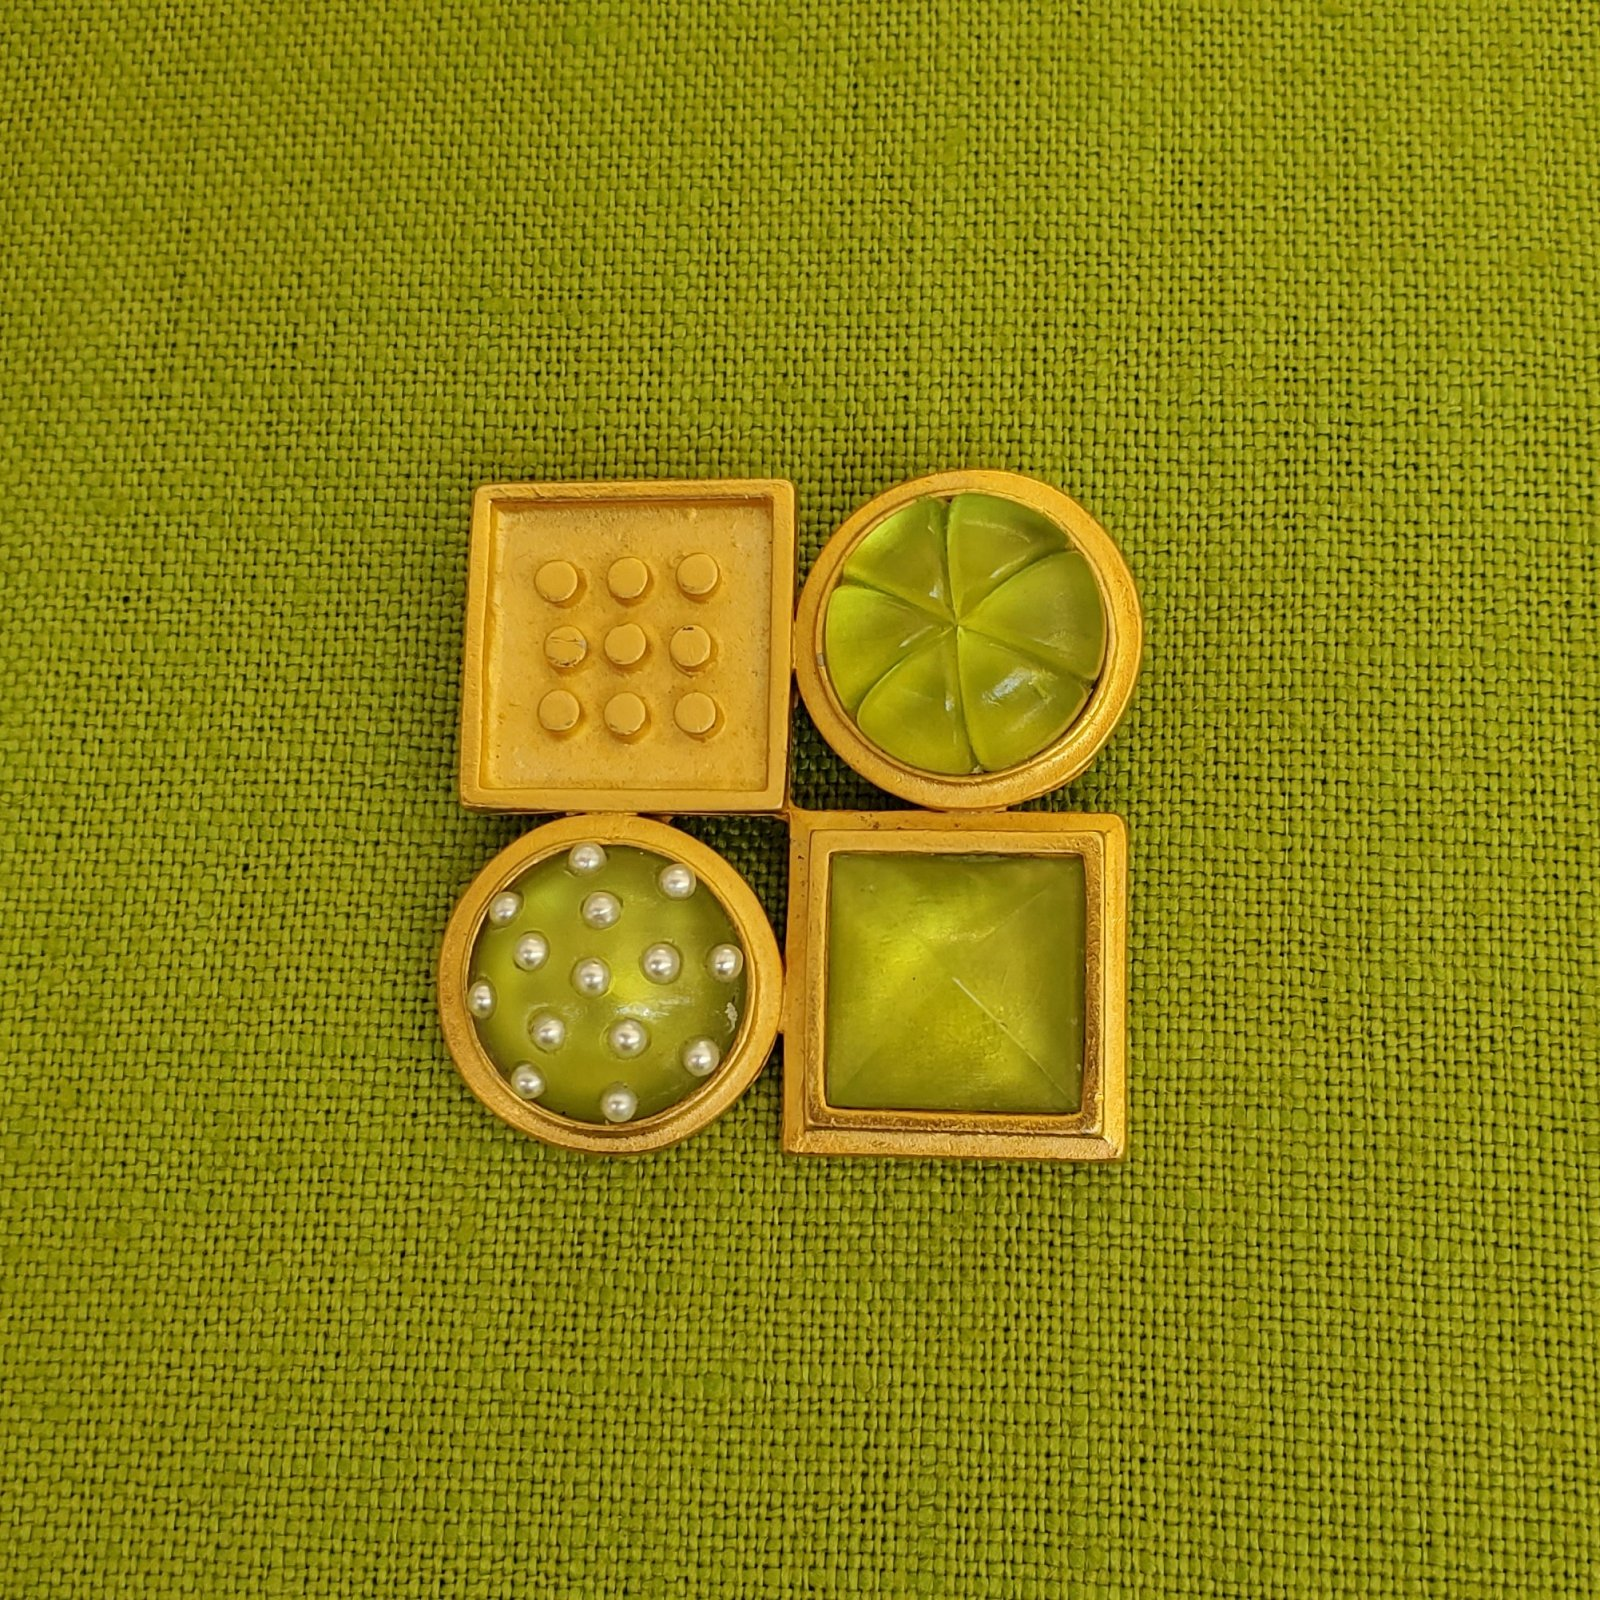 Green and gold pin-NN-010044